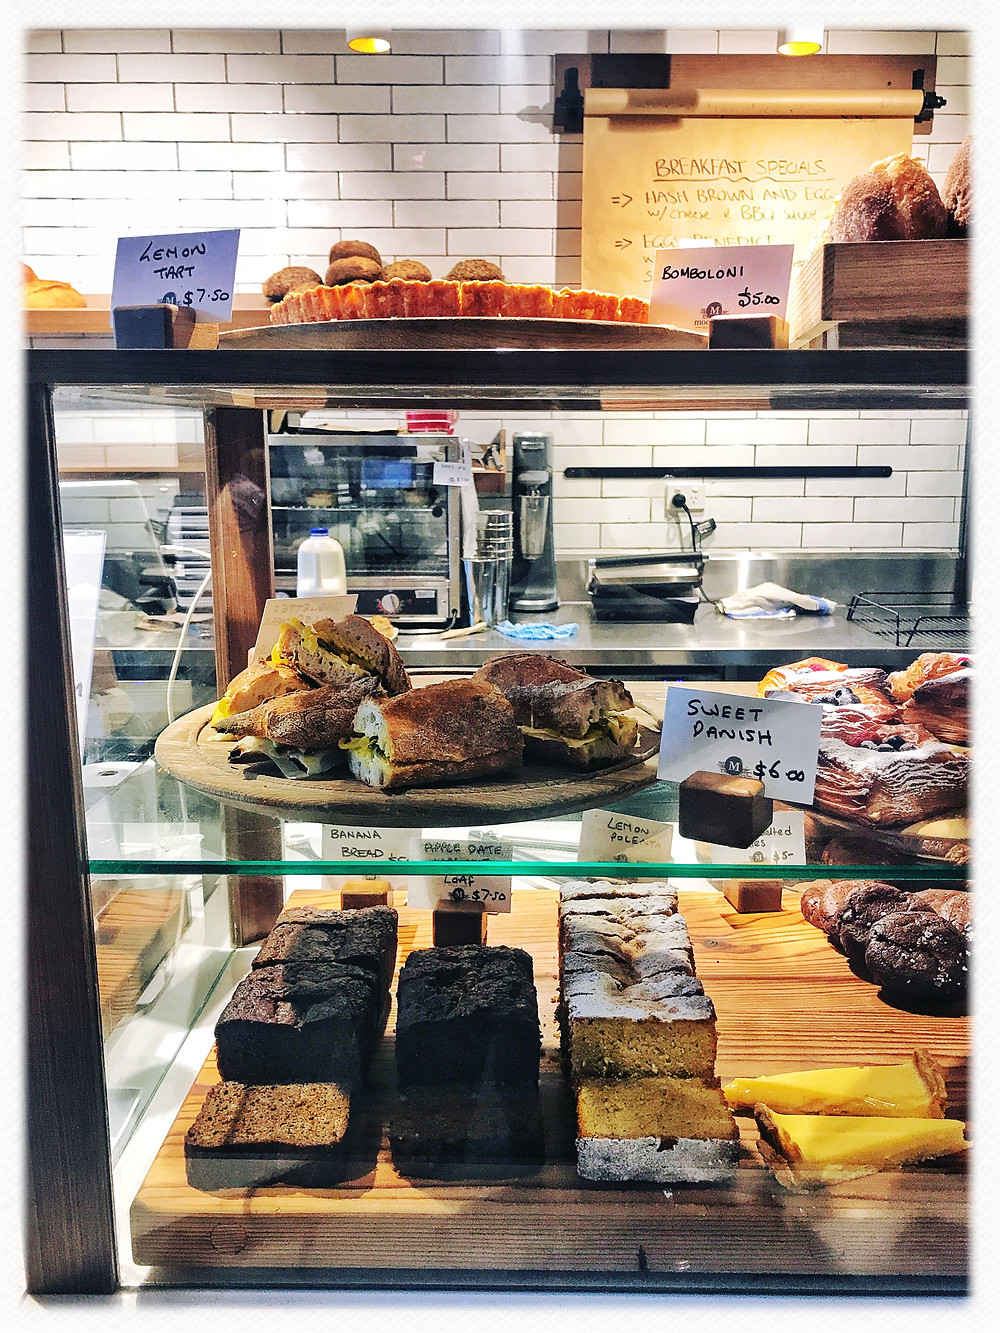 clovar-creative-kangaloon-southern-highlands-NSW-what-to-do-moonacres-bakery